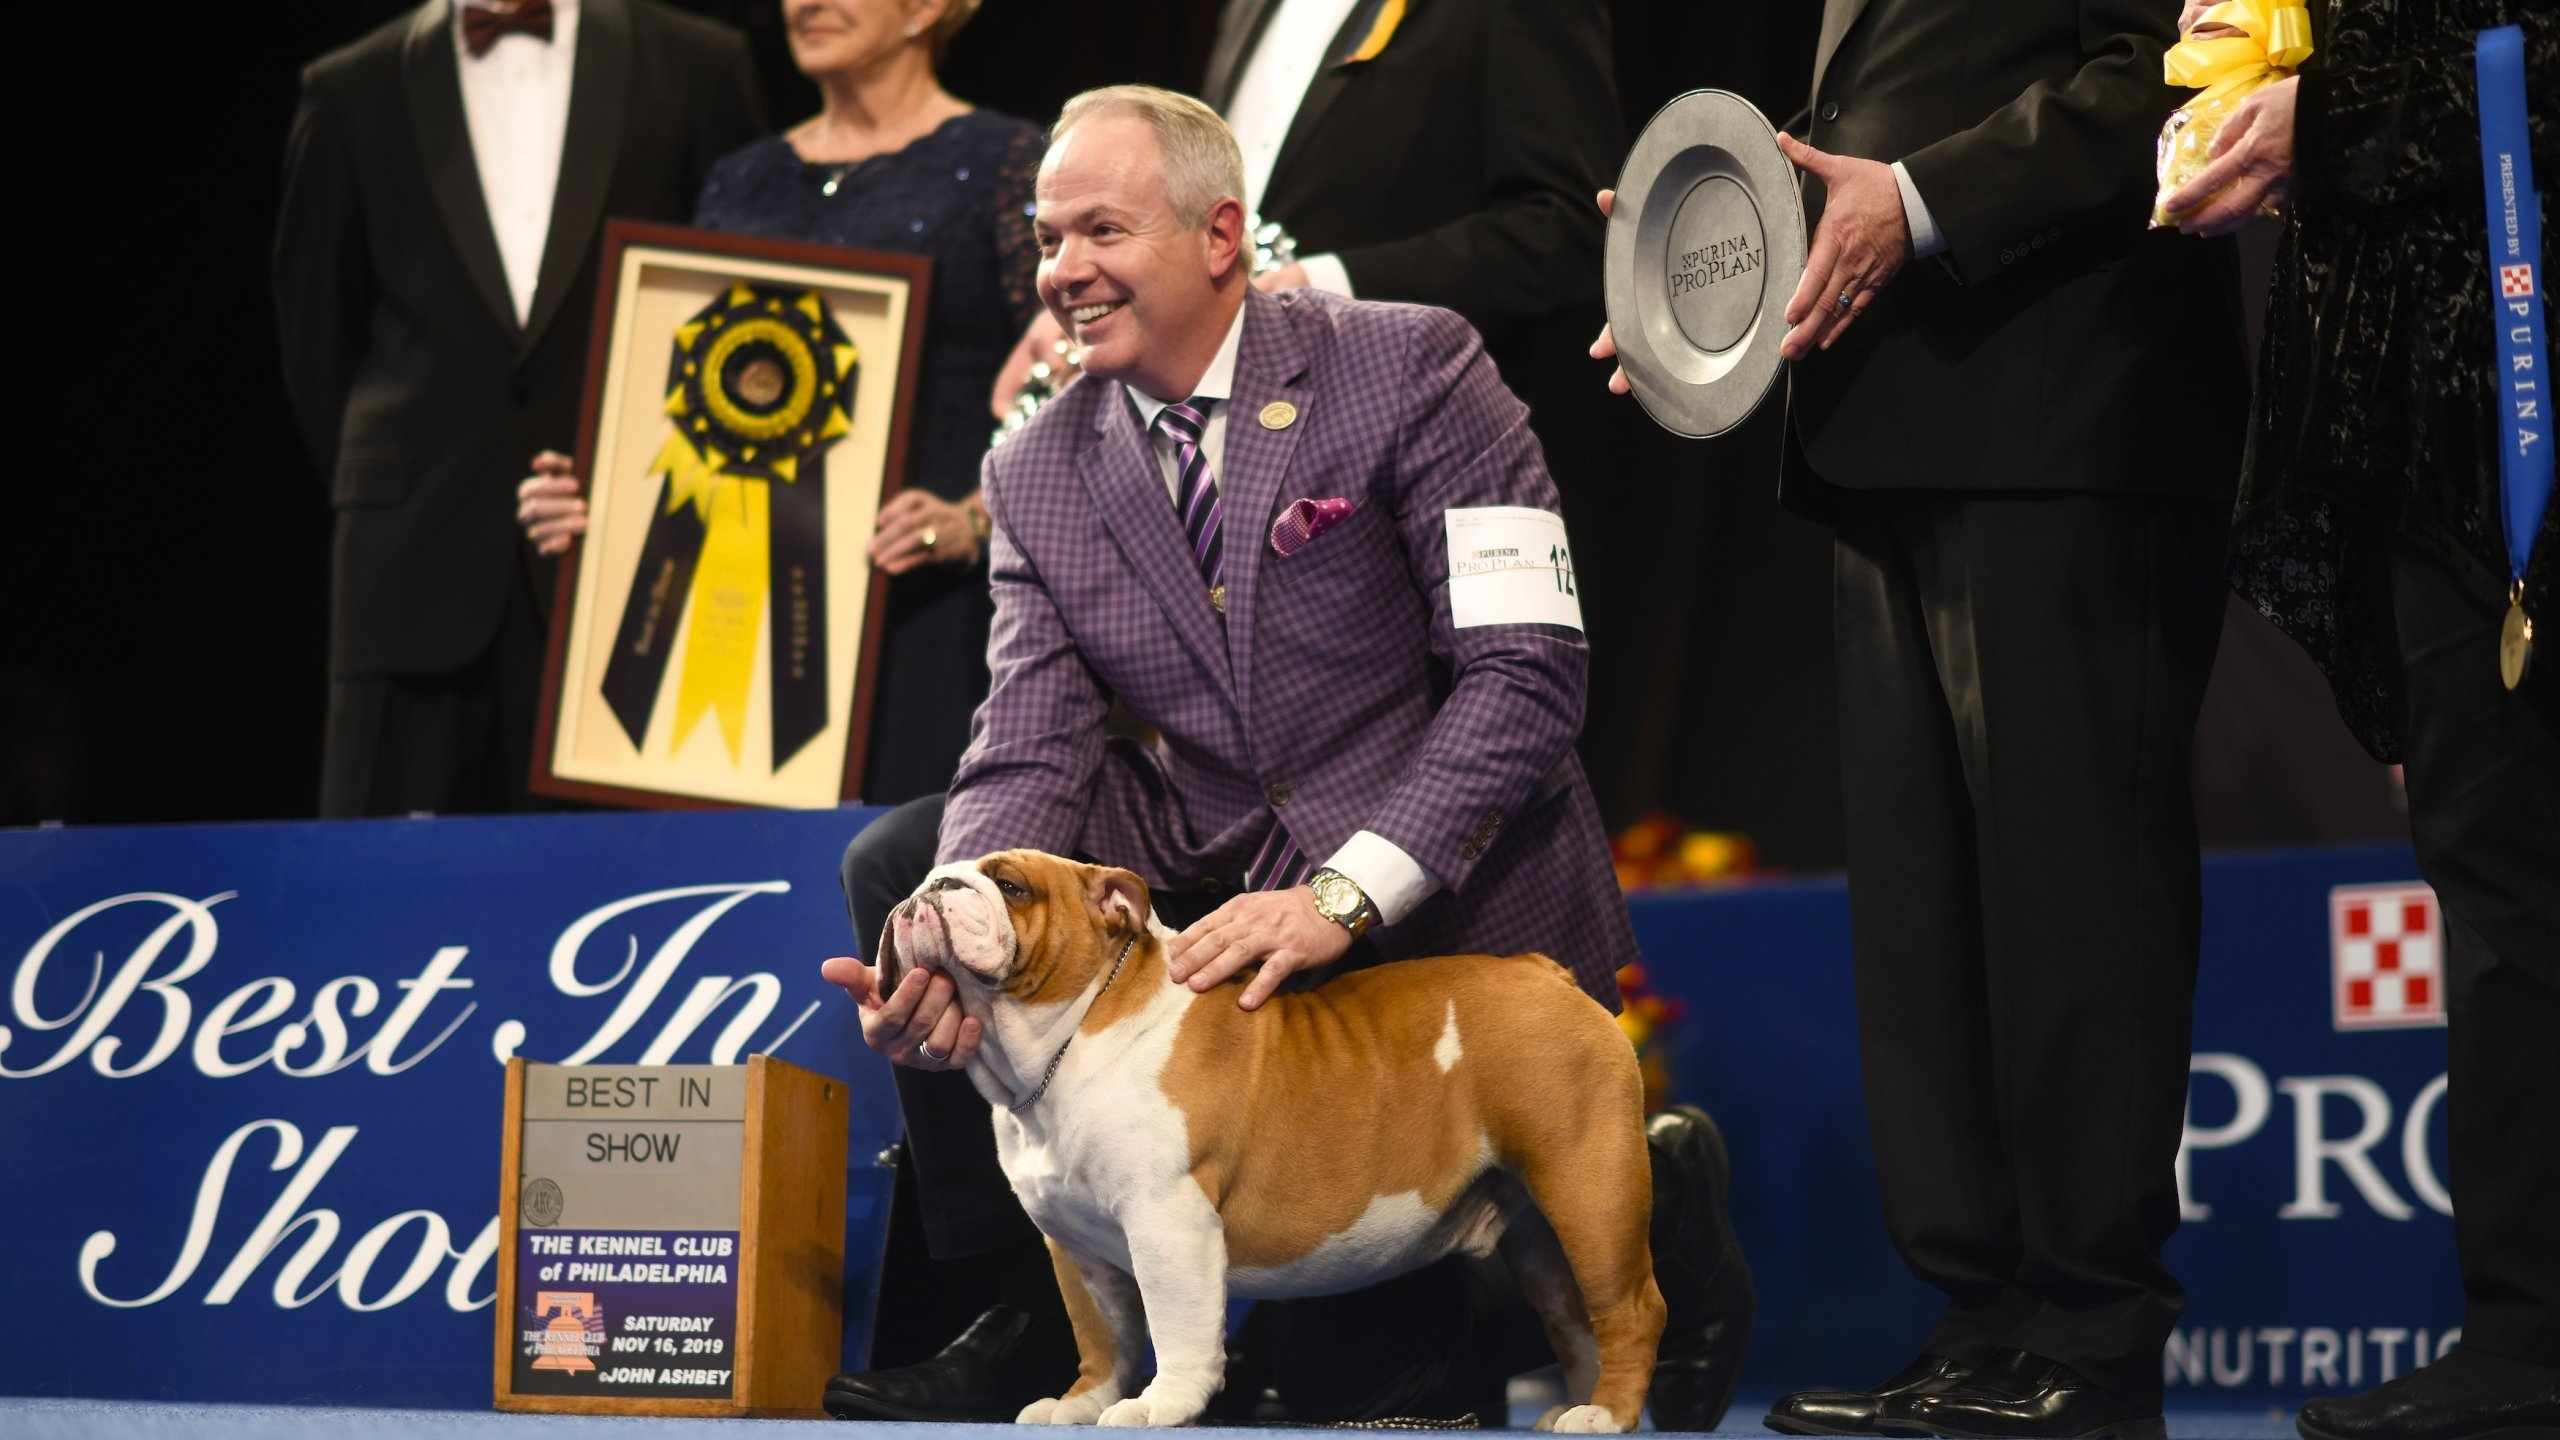 """A Bulldog named Thor poses for a photo after winning """"Best in Show"""" at the Greater Philadelphia Expo Center. (Credit: Mark Makela/Getty Images via CNN)"""